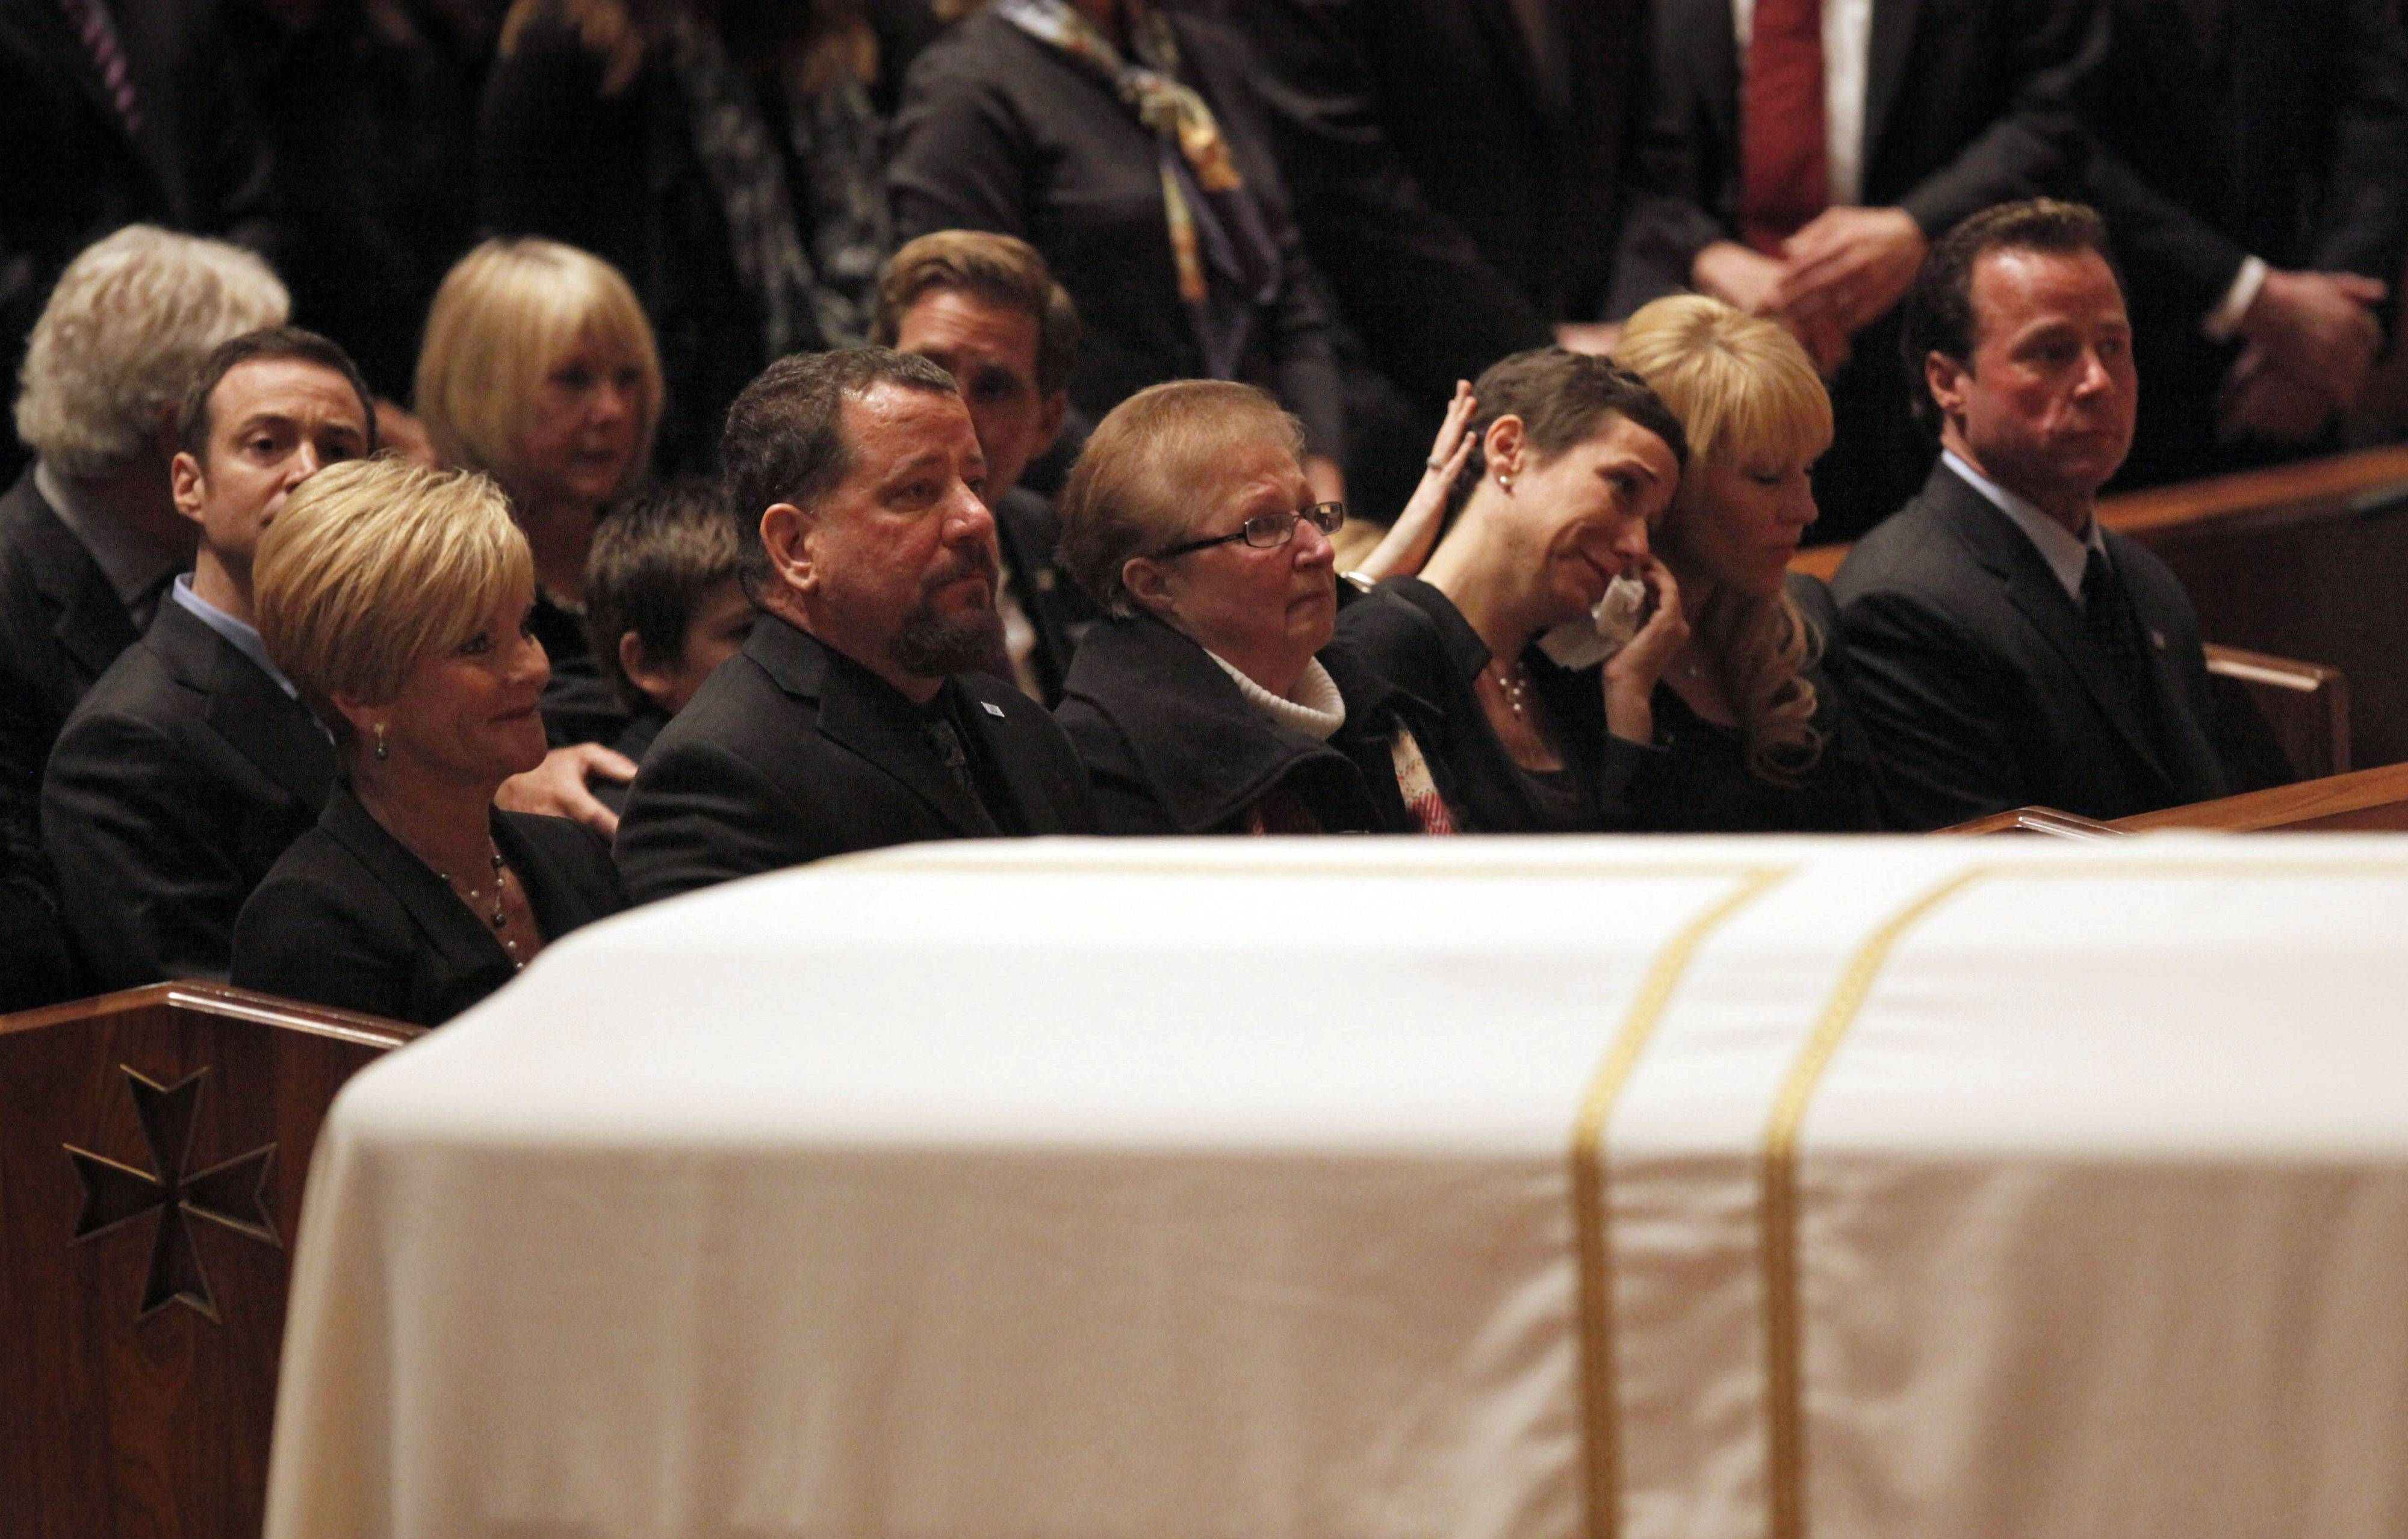 Family members react during the funeral Mass for Chicago Cubs great and longtime radio announcer Ron Santo at Holy Name Cathedral, Friday, Dec. 10, 2010 in Chicago. The nine-time all-star died Dec. 2 from complications of bladder cancer. He was 70.